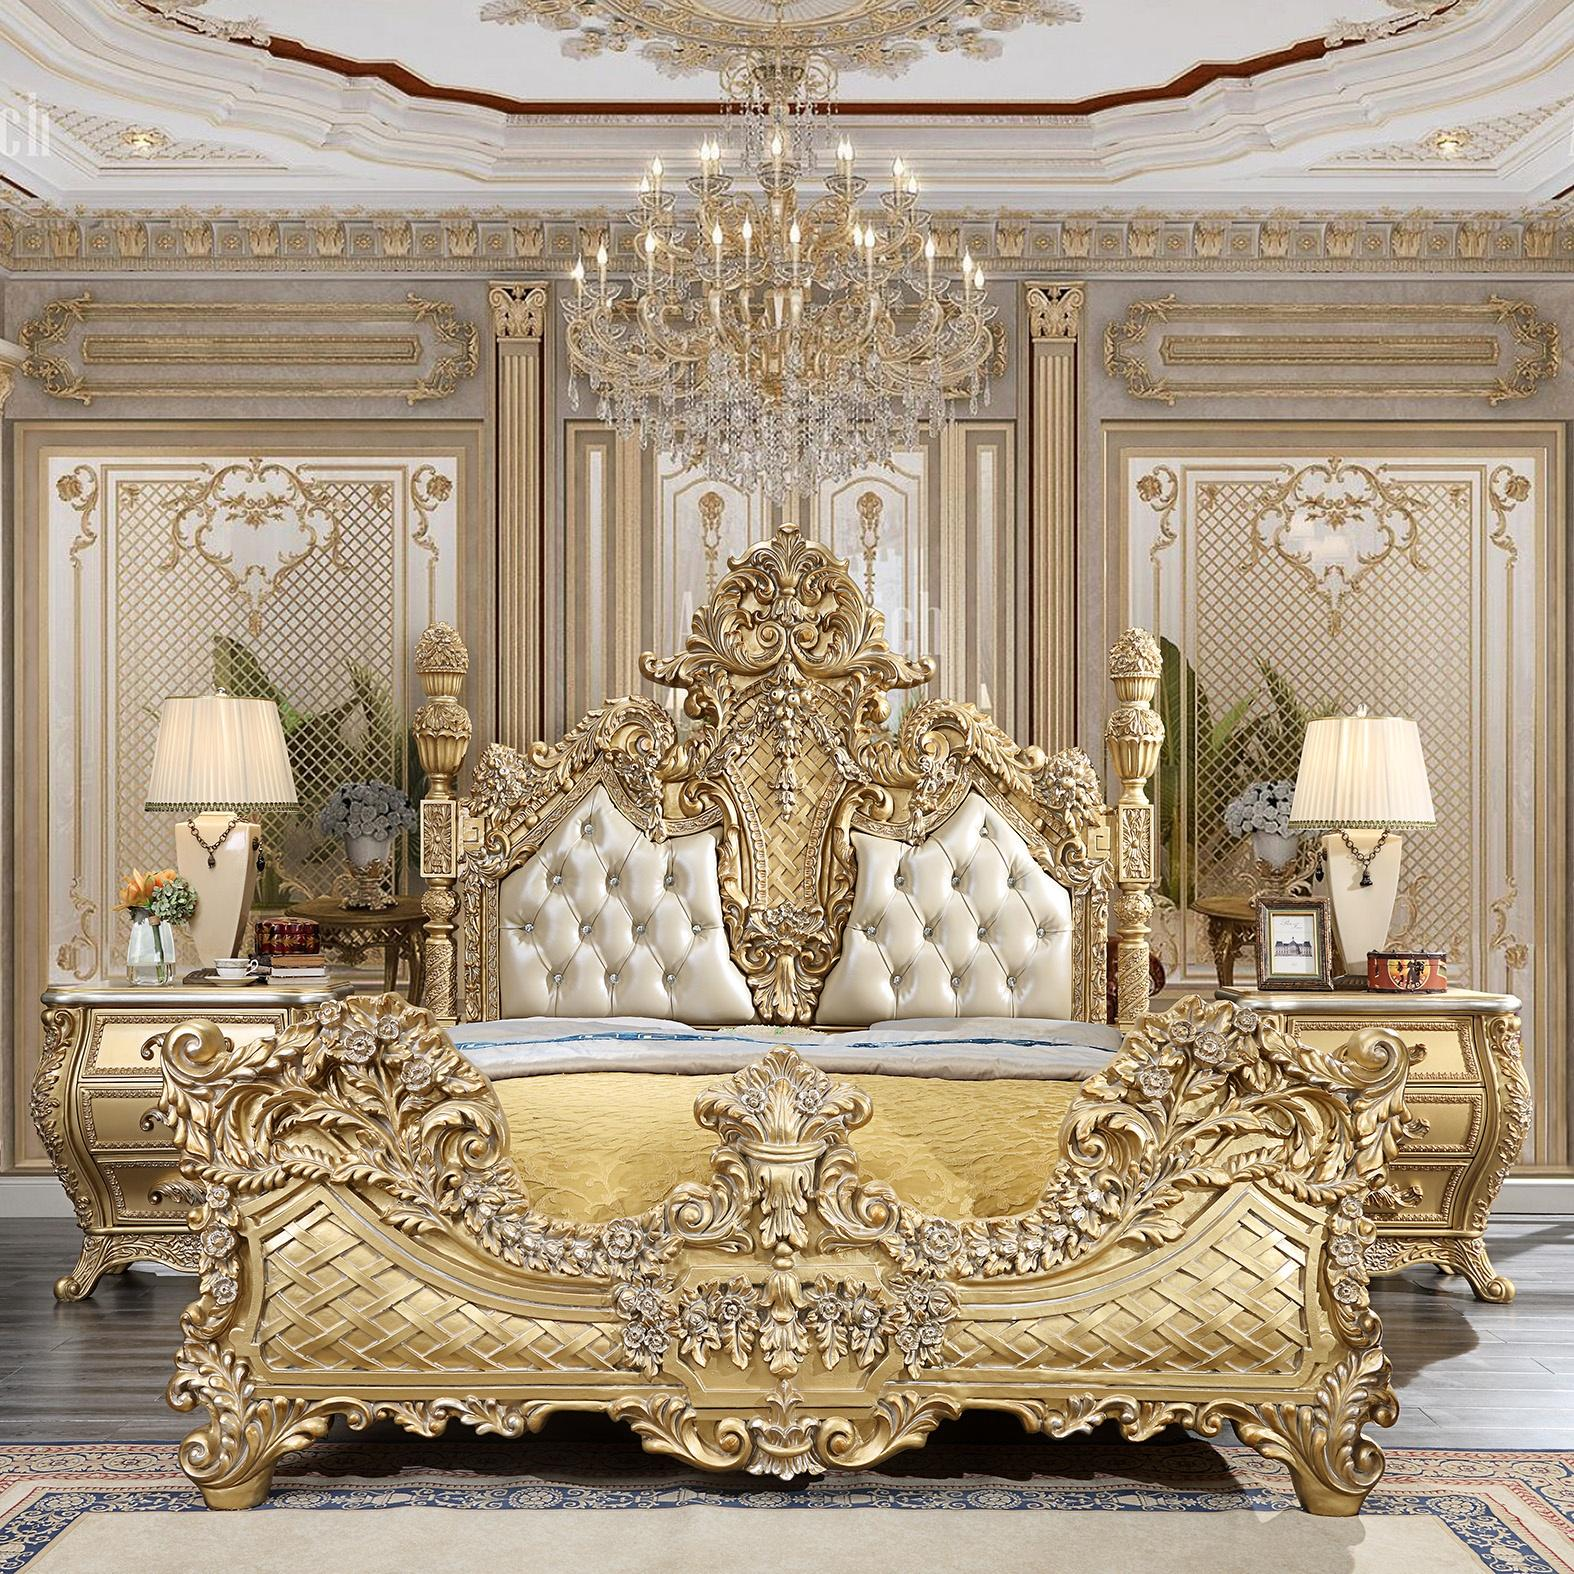 Metallic Antique Gold & Leather Cal King Bed Traditional Homey Design HD-1801